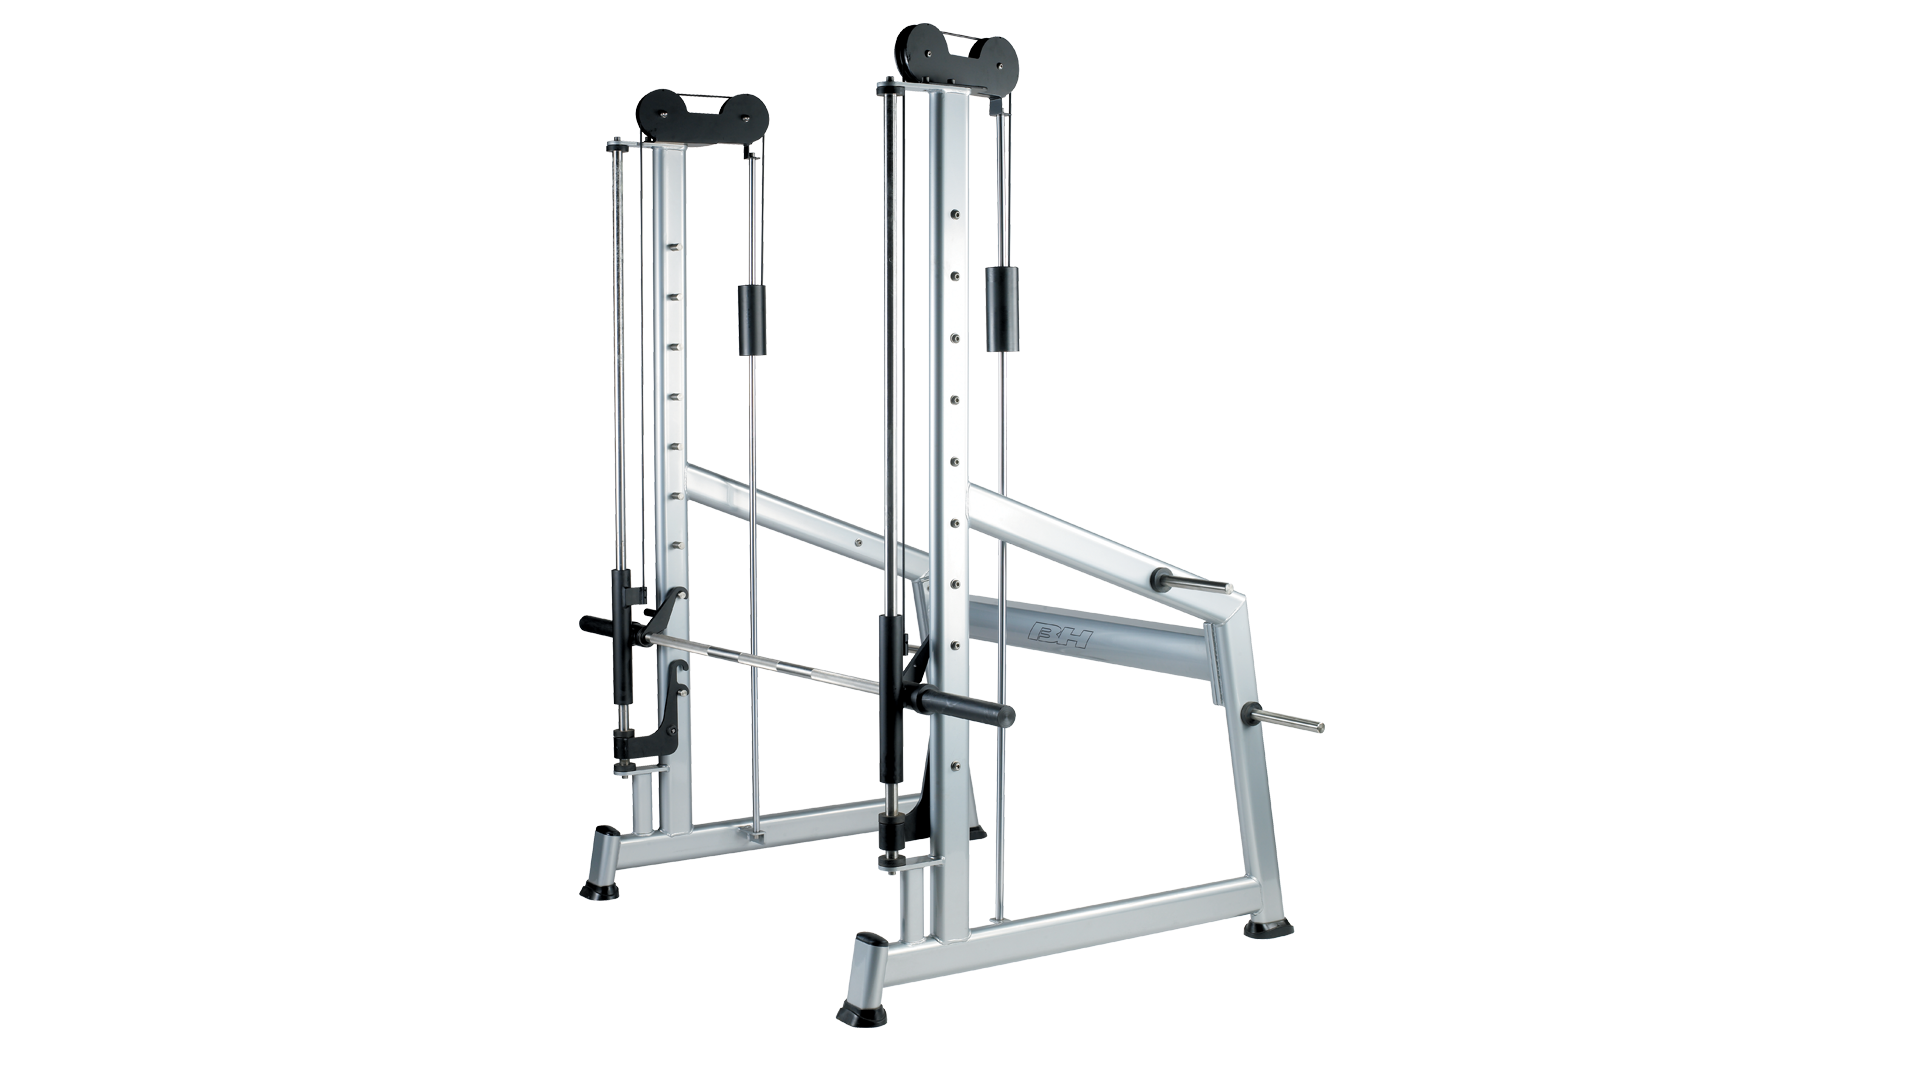 Multipress with counterbalance and tempered bar for olympic plates